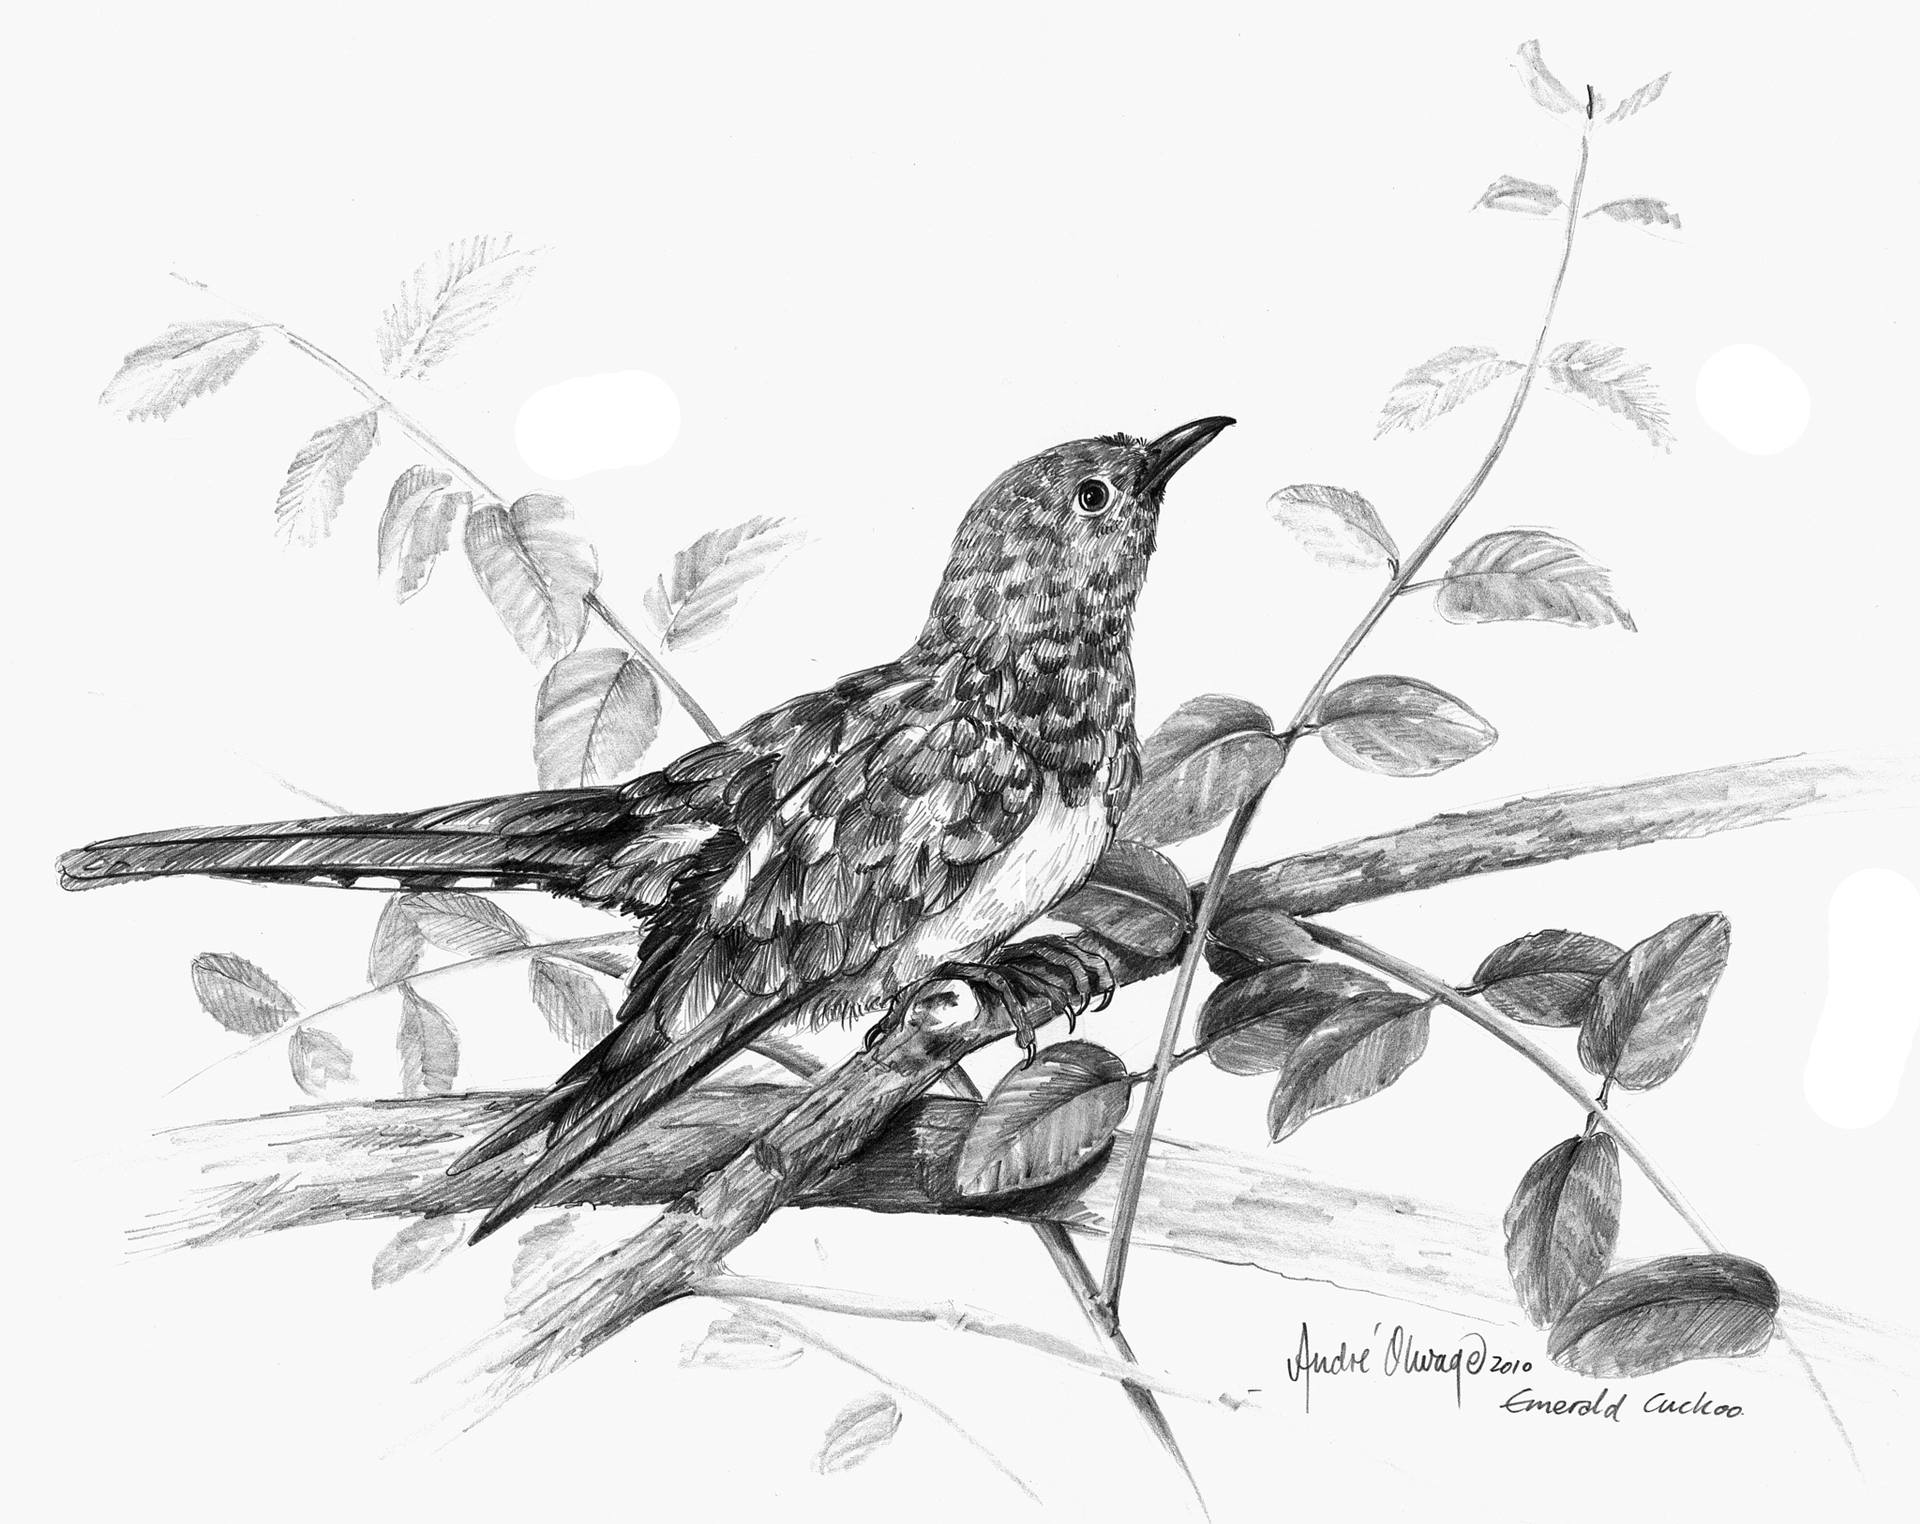 1920x1524 Saatchi Art Emerald Cuckoo Drawing By Andre Olwage